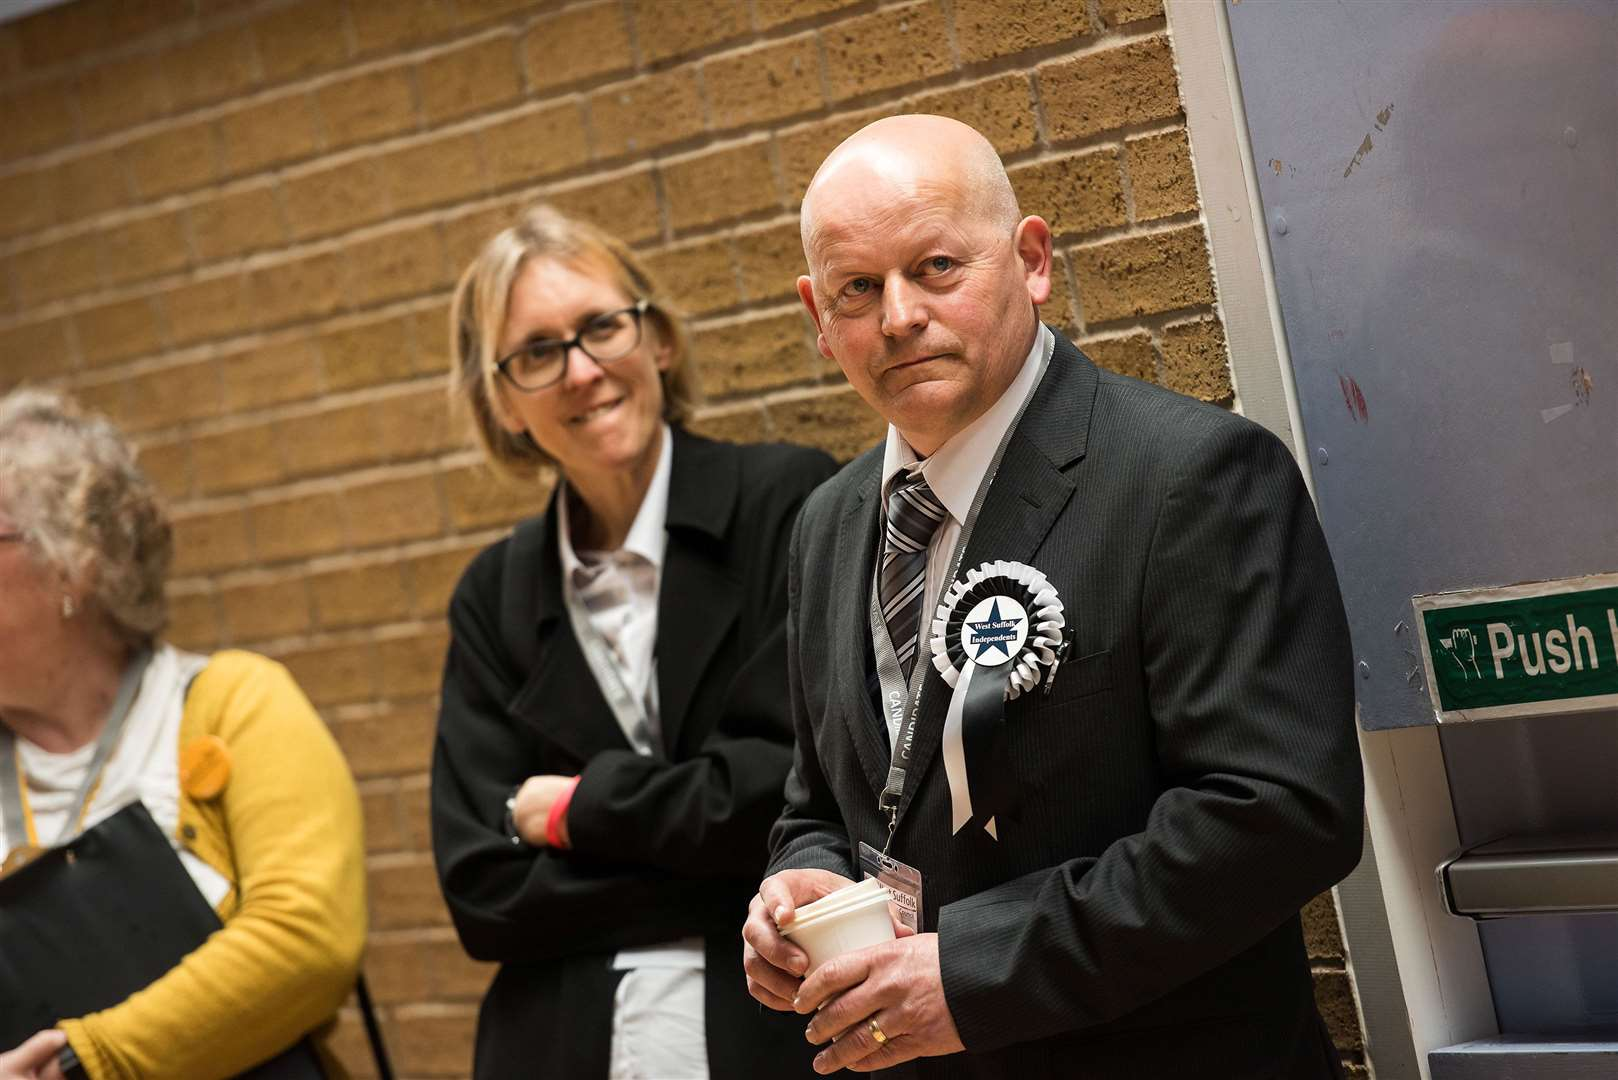 Ruth Allen and Cllr Michael Anderson